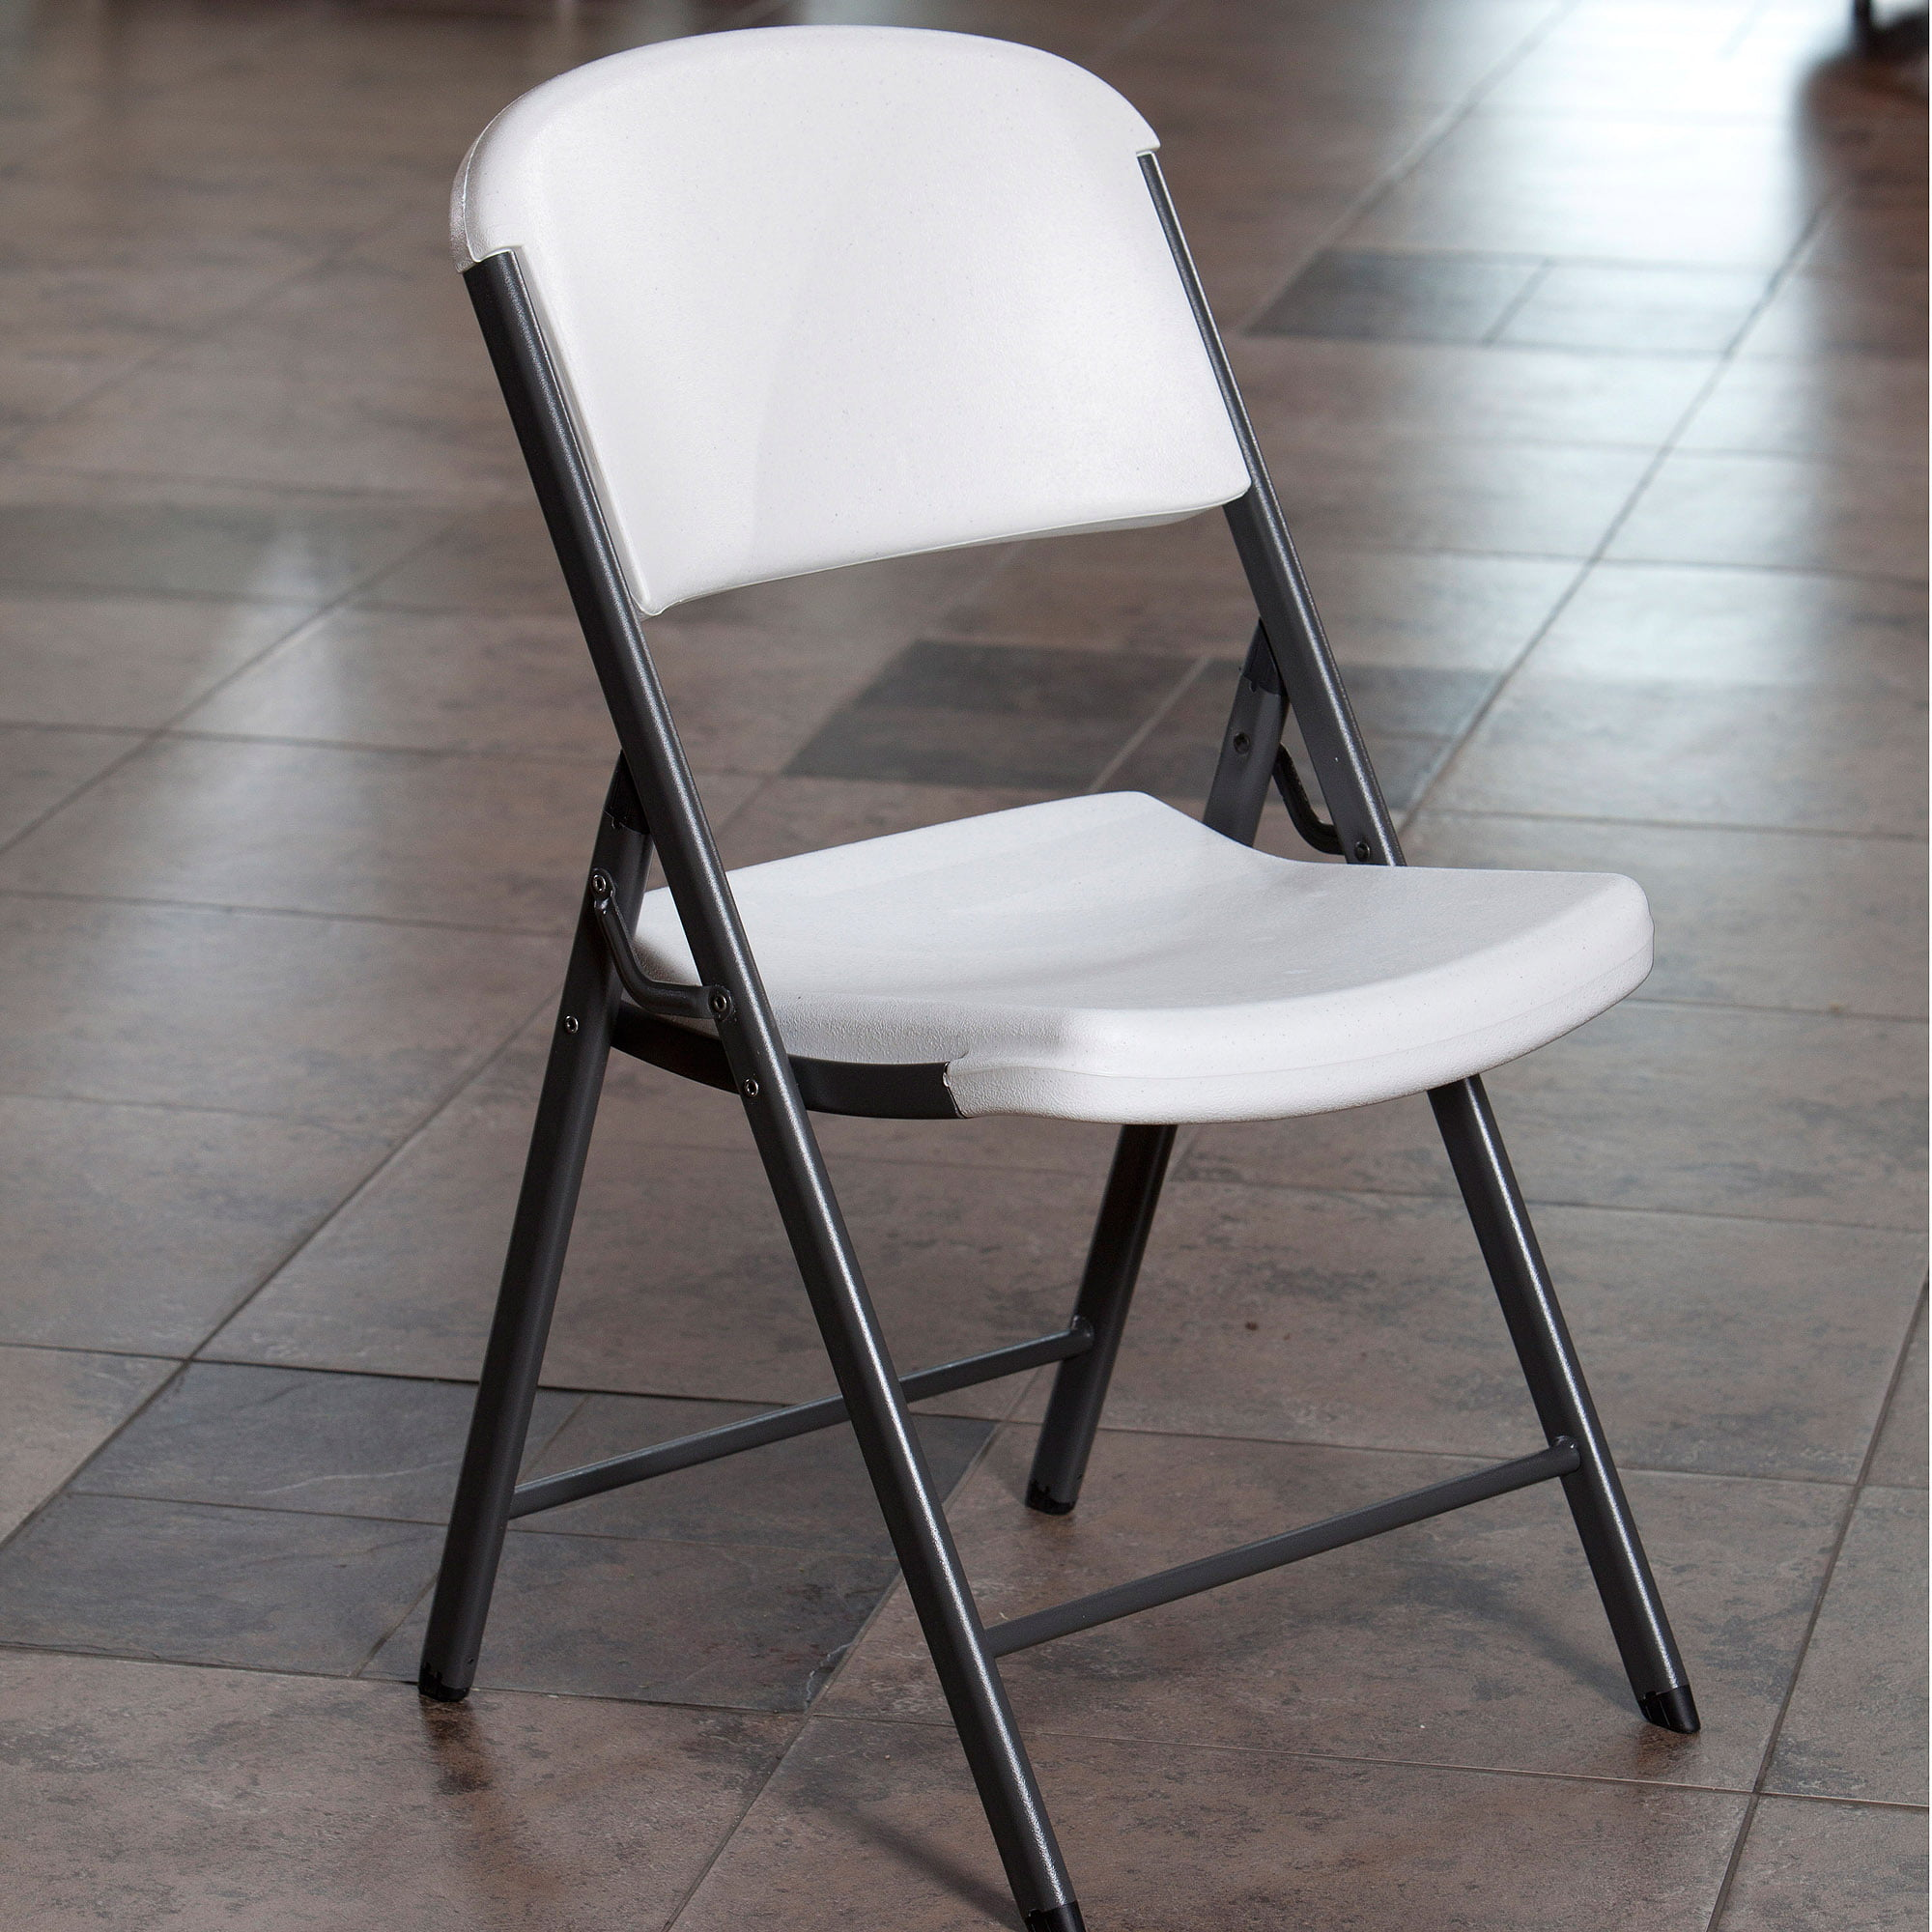 Lifetime Classic Commercial Folding Chair, Set Of 4   Walmart.com